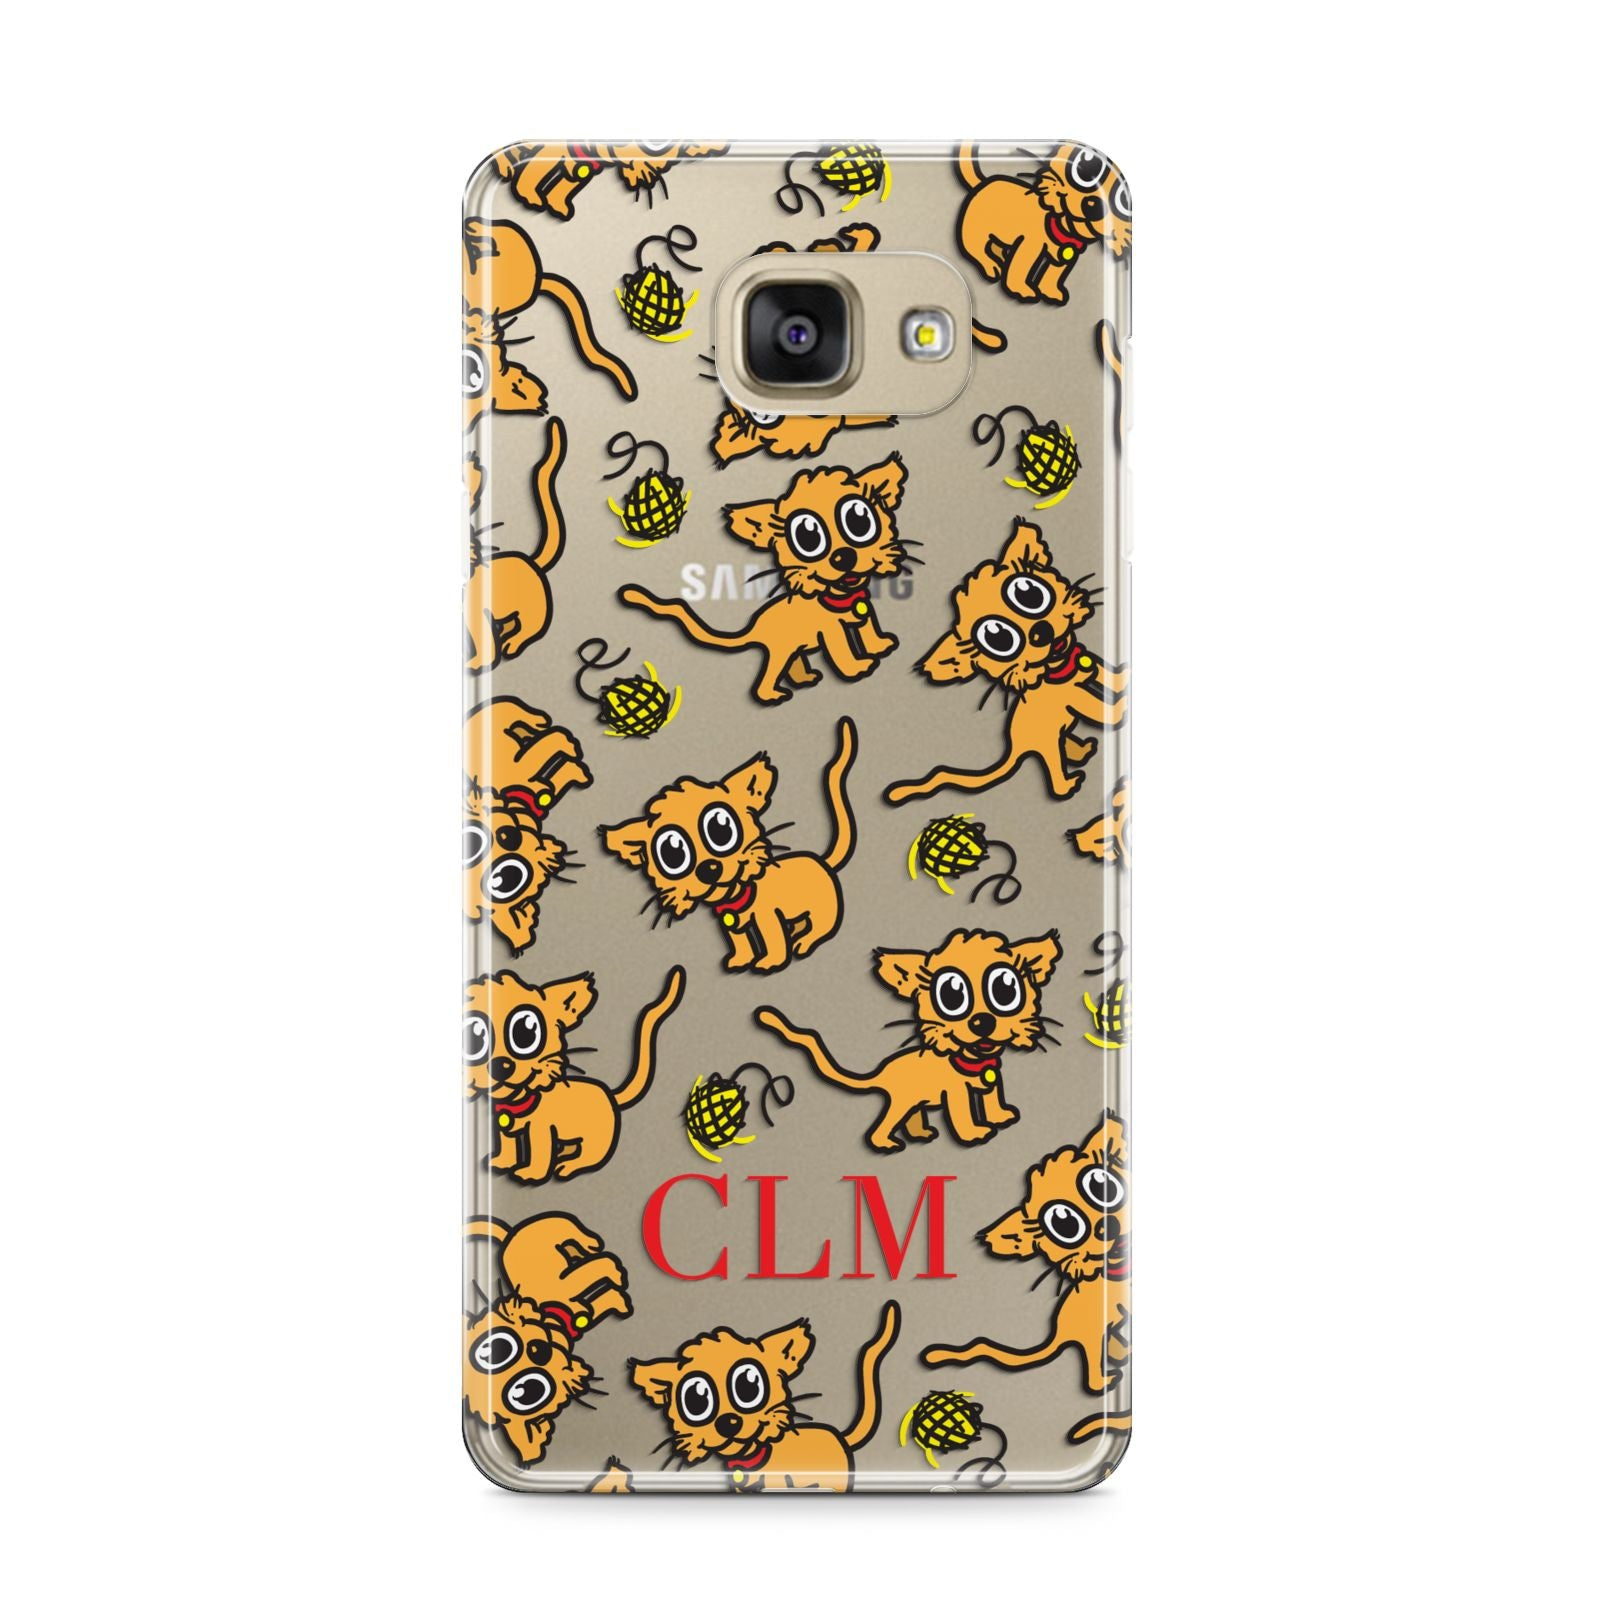 Personalised Puppy Initials Clear Samsung Galaxy A9 2016 Case on gold phone